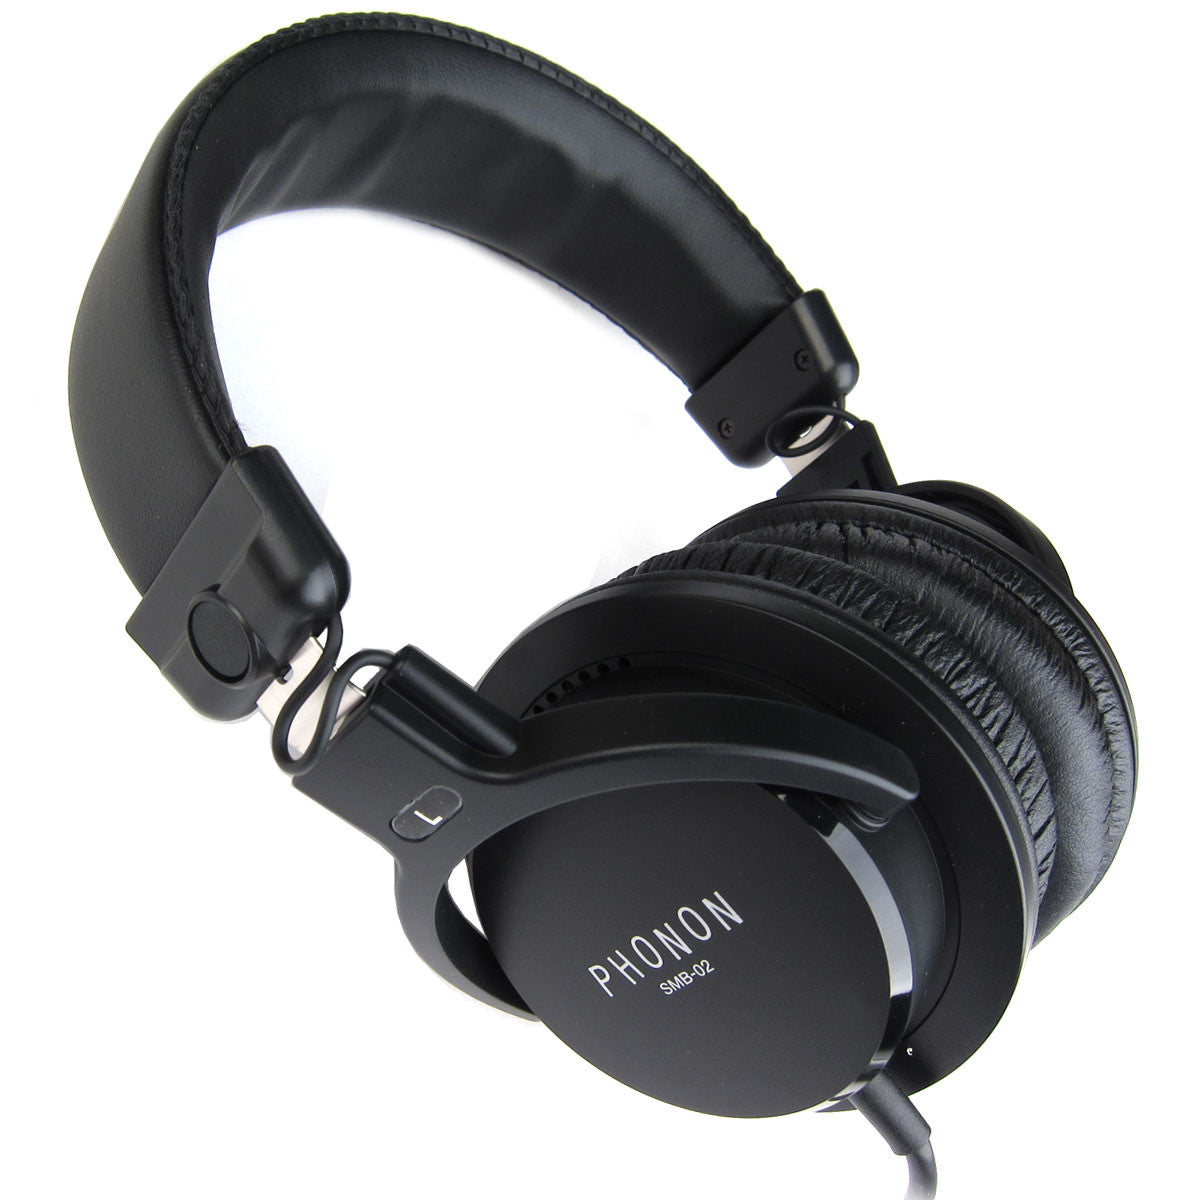 PHONON: SMB-02 Headphones